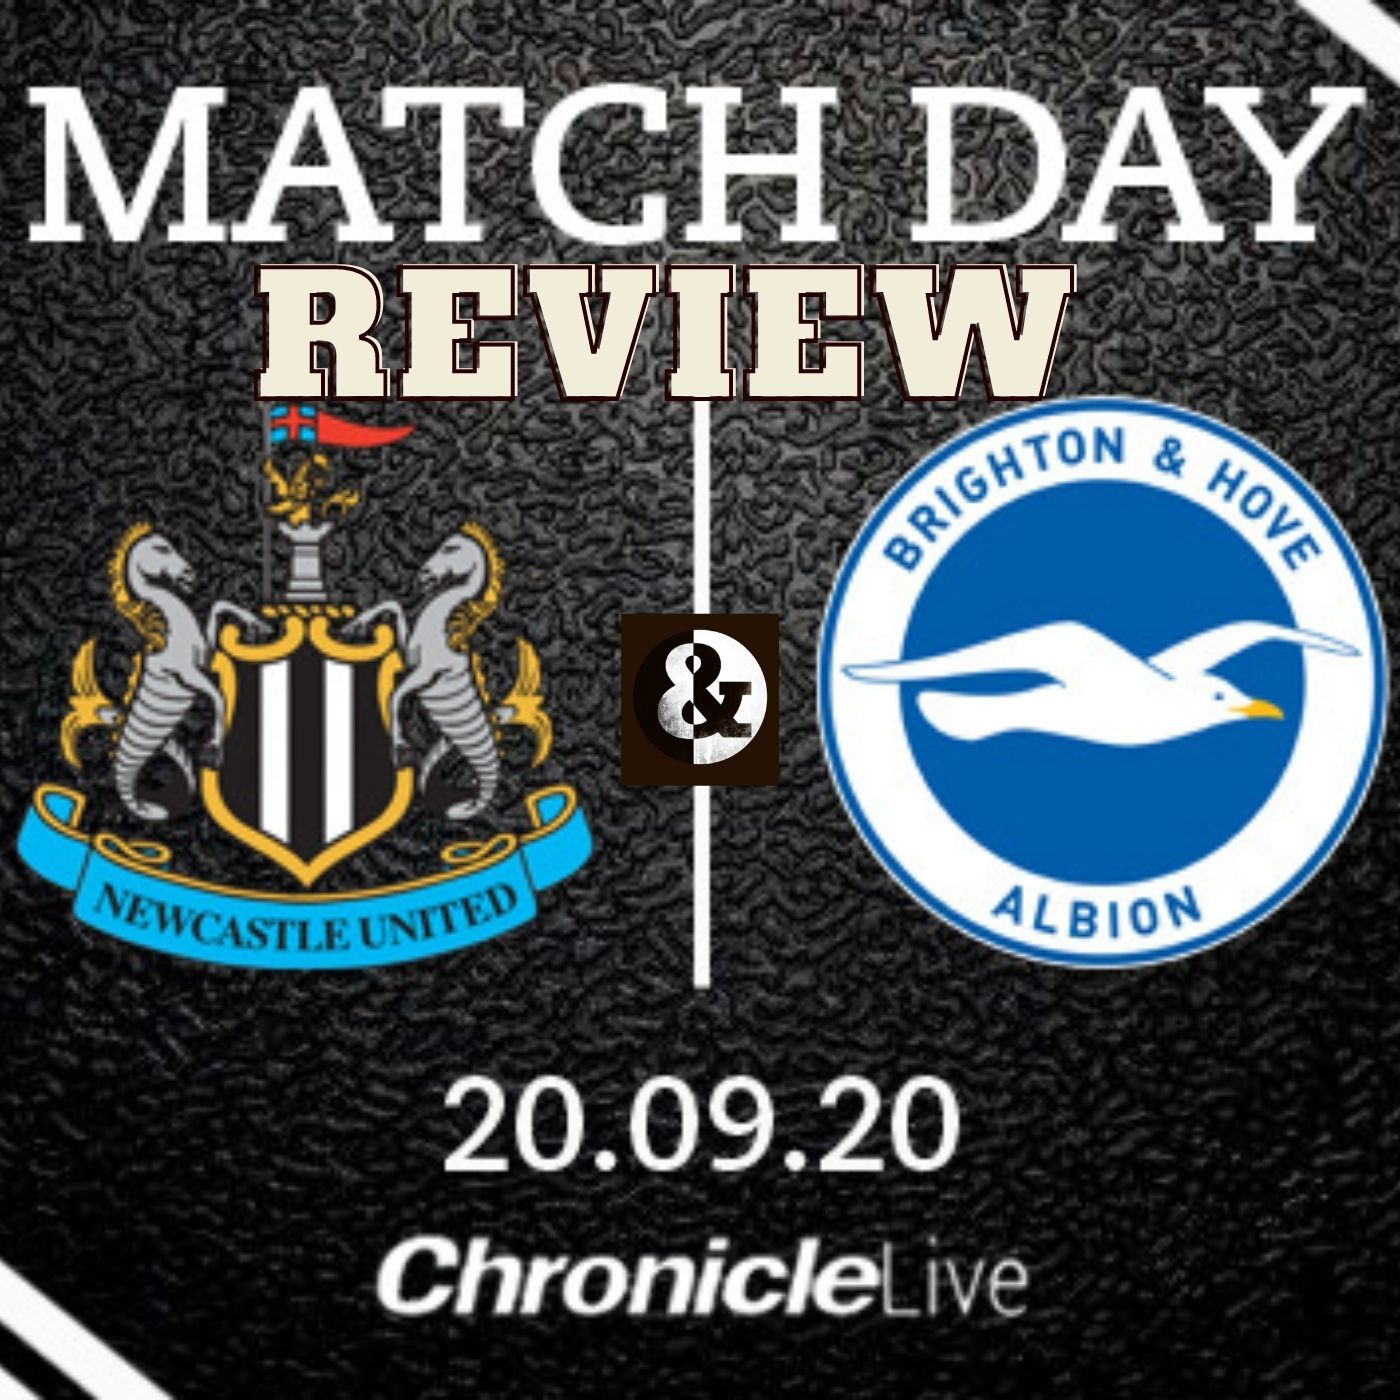 NUFC 0-3 Brighton: Did Steve Bruce get it wrong as Magpies thumped at home